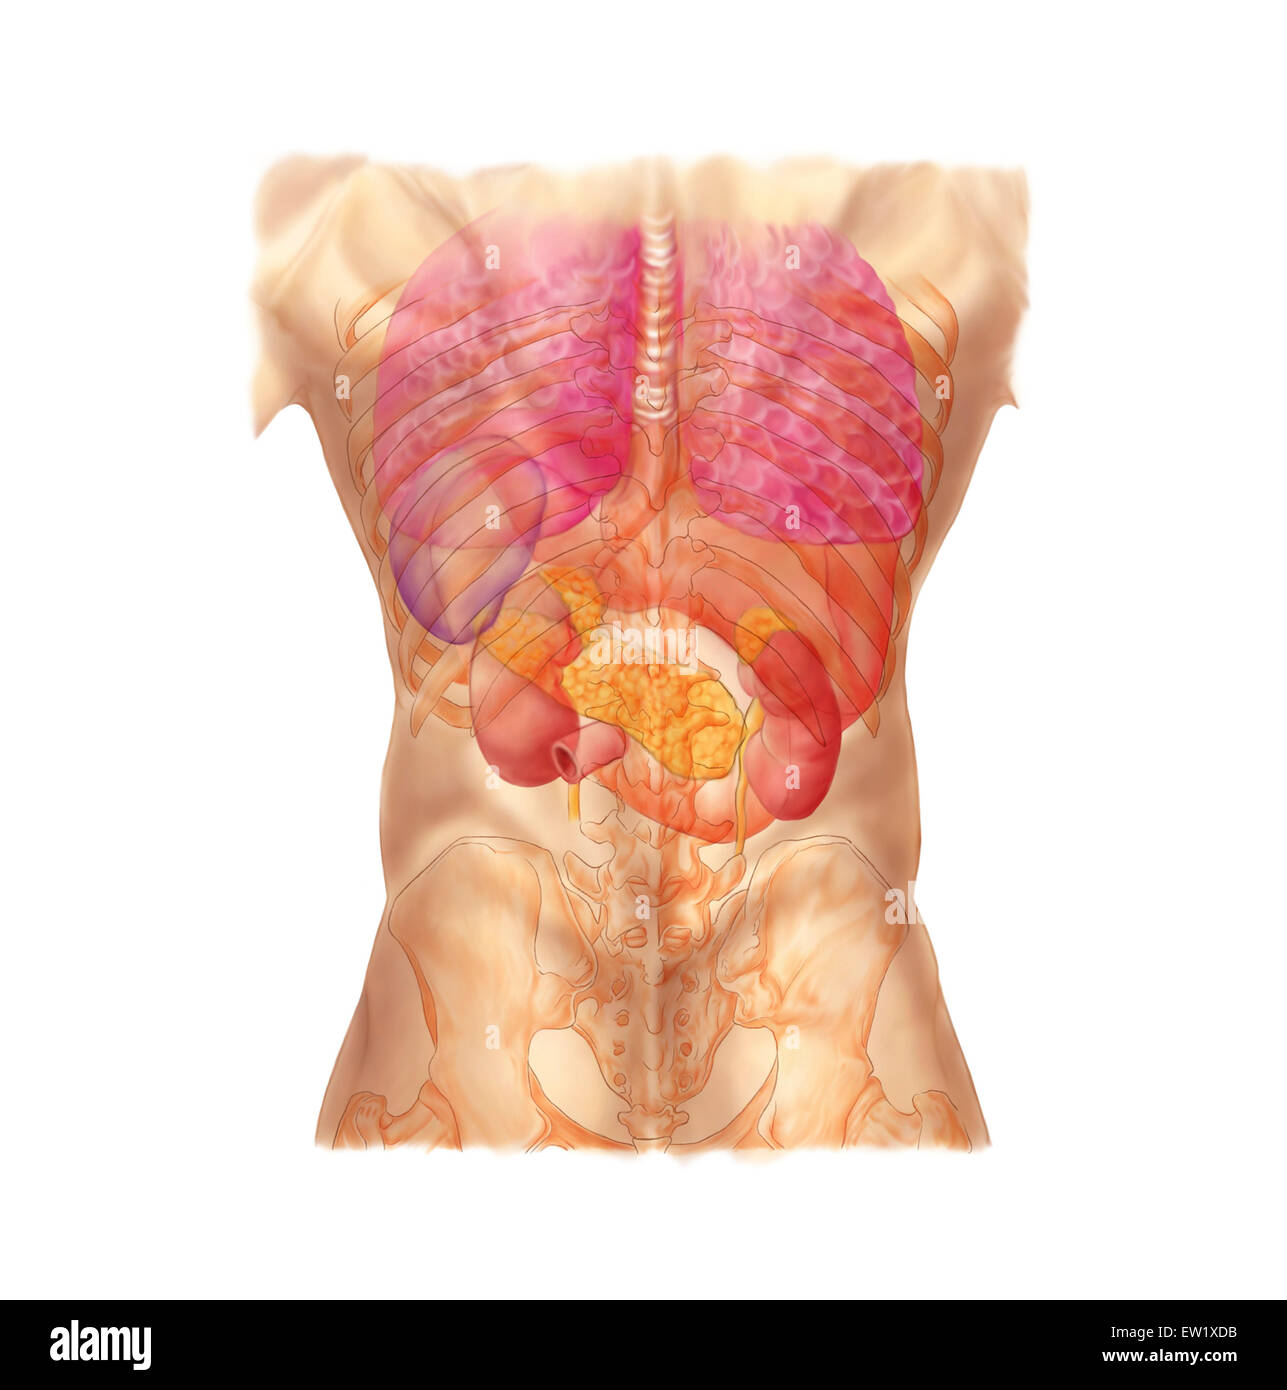 Abdominal quadrants posterior view with internal organs and rib abdominal quadrants posterior view with internal organs and rib cage ccuart Image collections